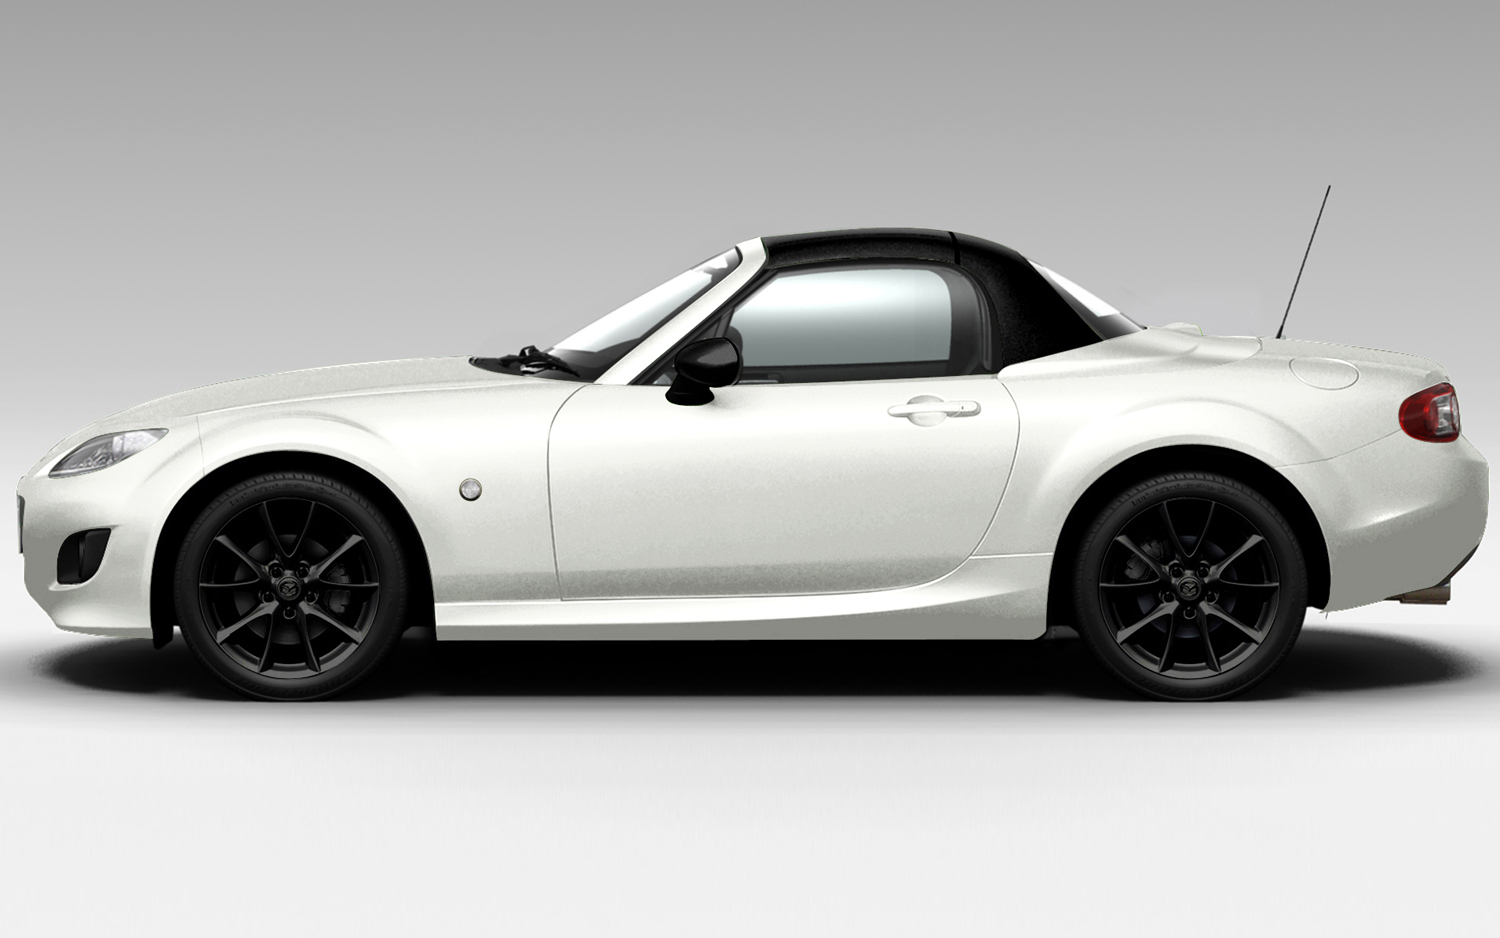 Awesome Mazda Celebrating MX 5 Miata With Chicago Bound Special Edition